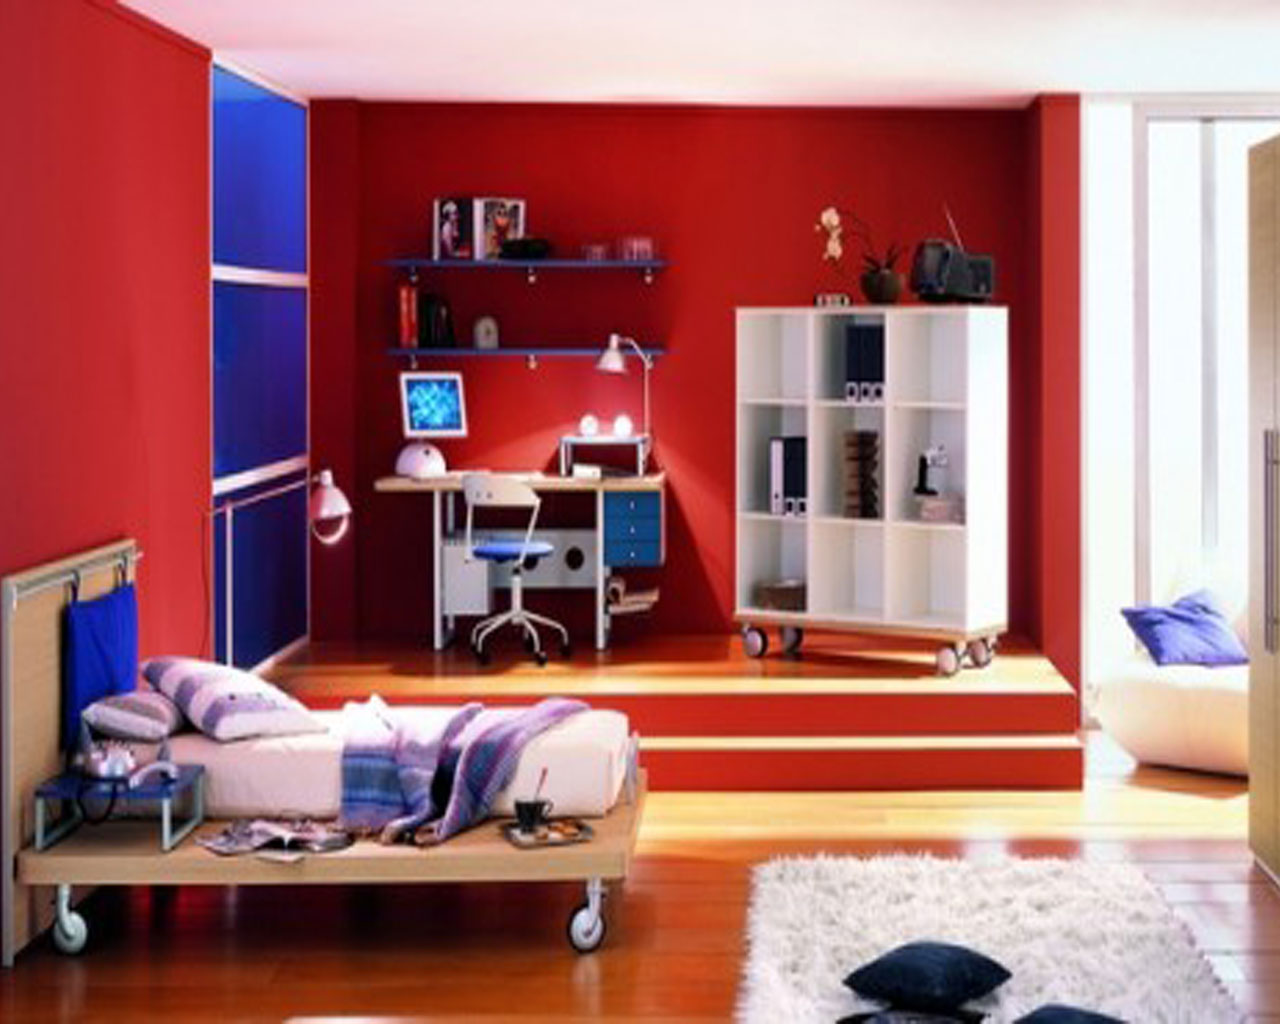 Red Painted Wall and Laminate Hardwood Flooring Used in Fancy Boys Room Decor with White Shelves